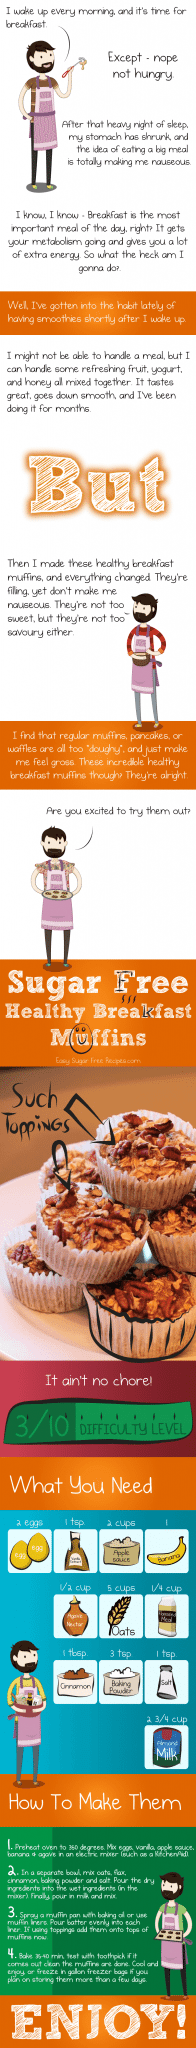 sugar-free-comic-healthy-breakfast-muffins